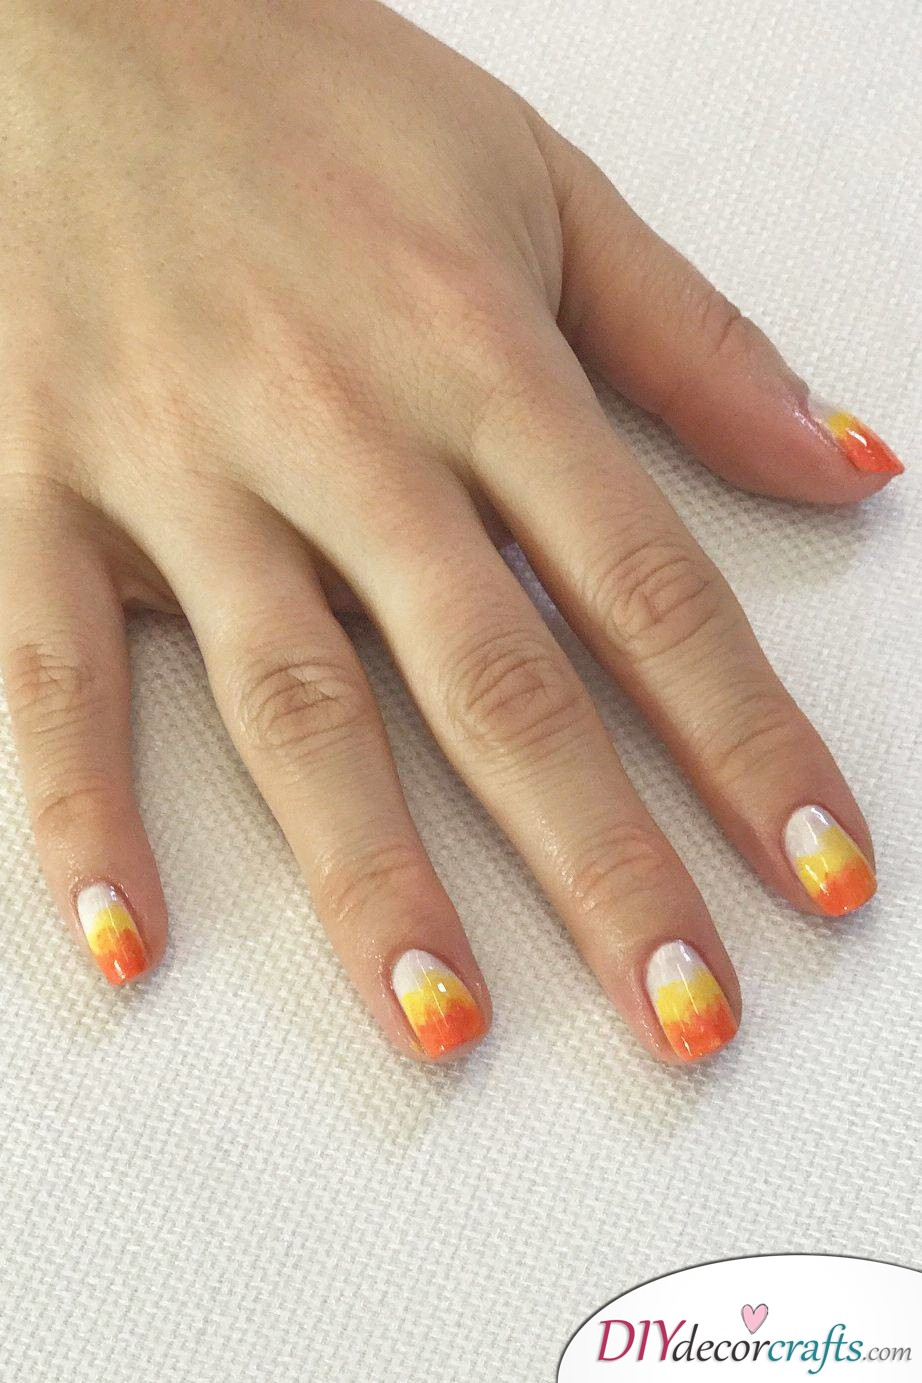 The Best Nail Art Ideas For Halloween, Candy Corn Ombré